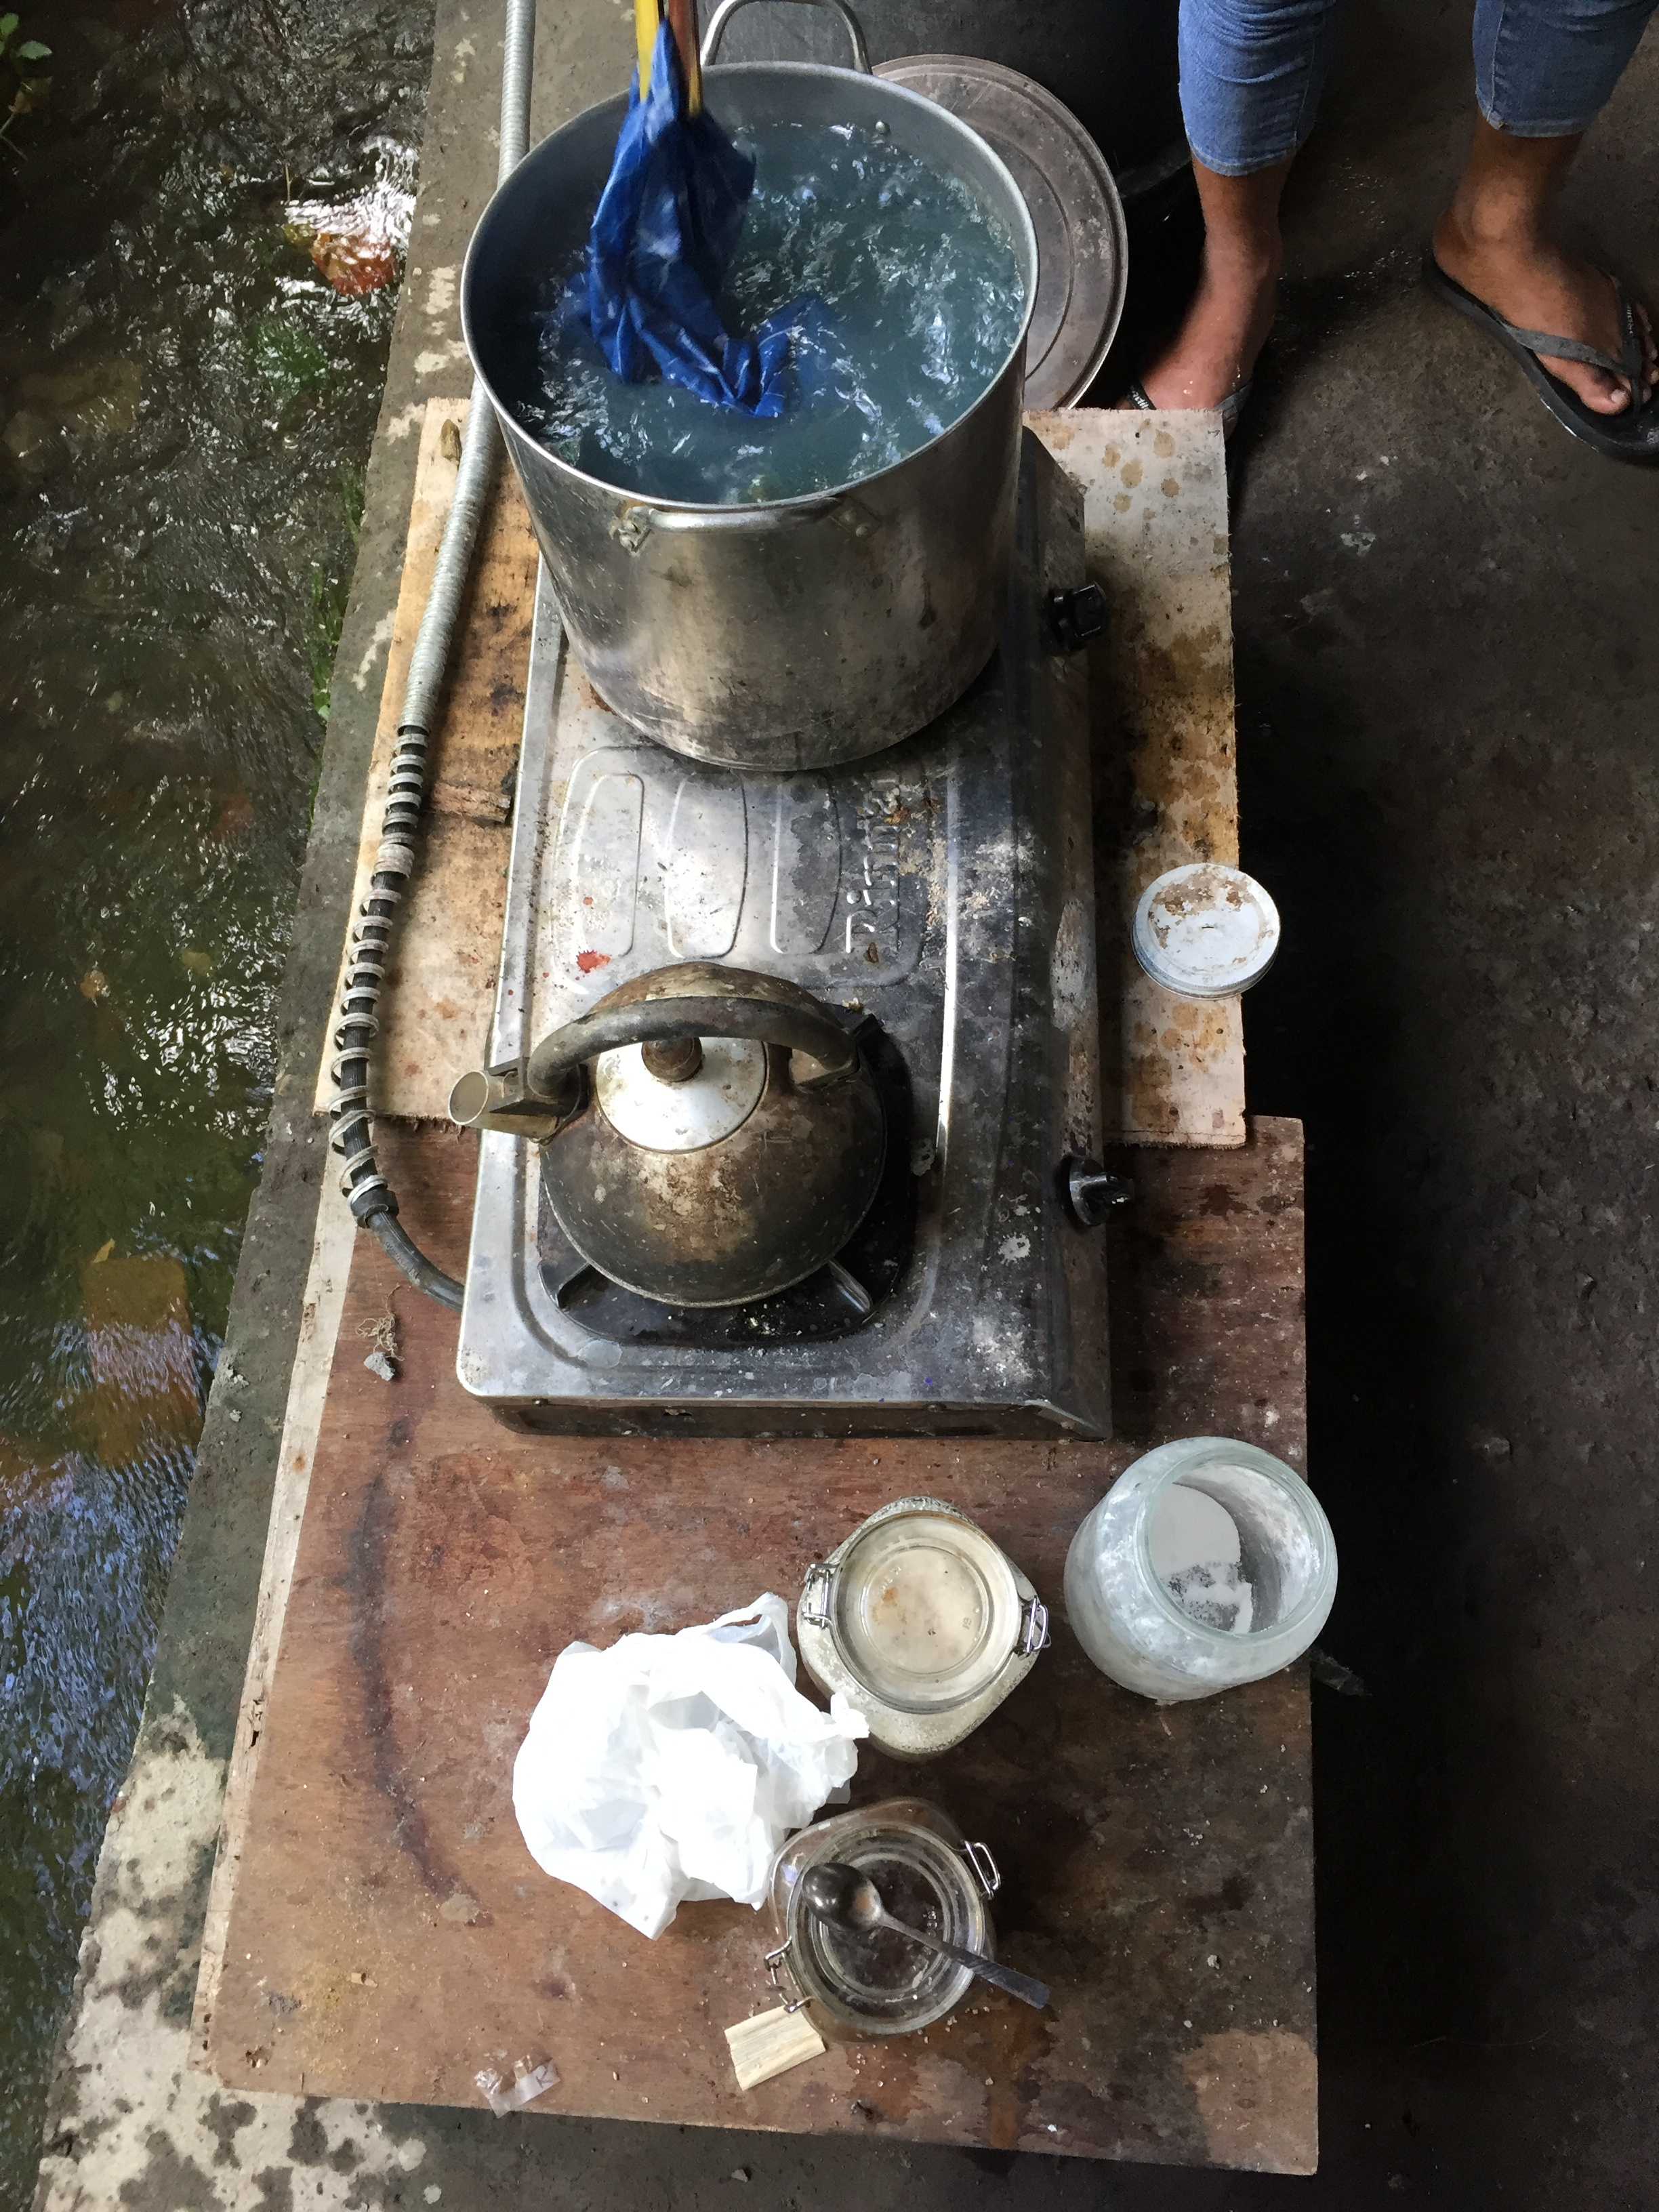 Dyeing materials